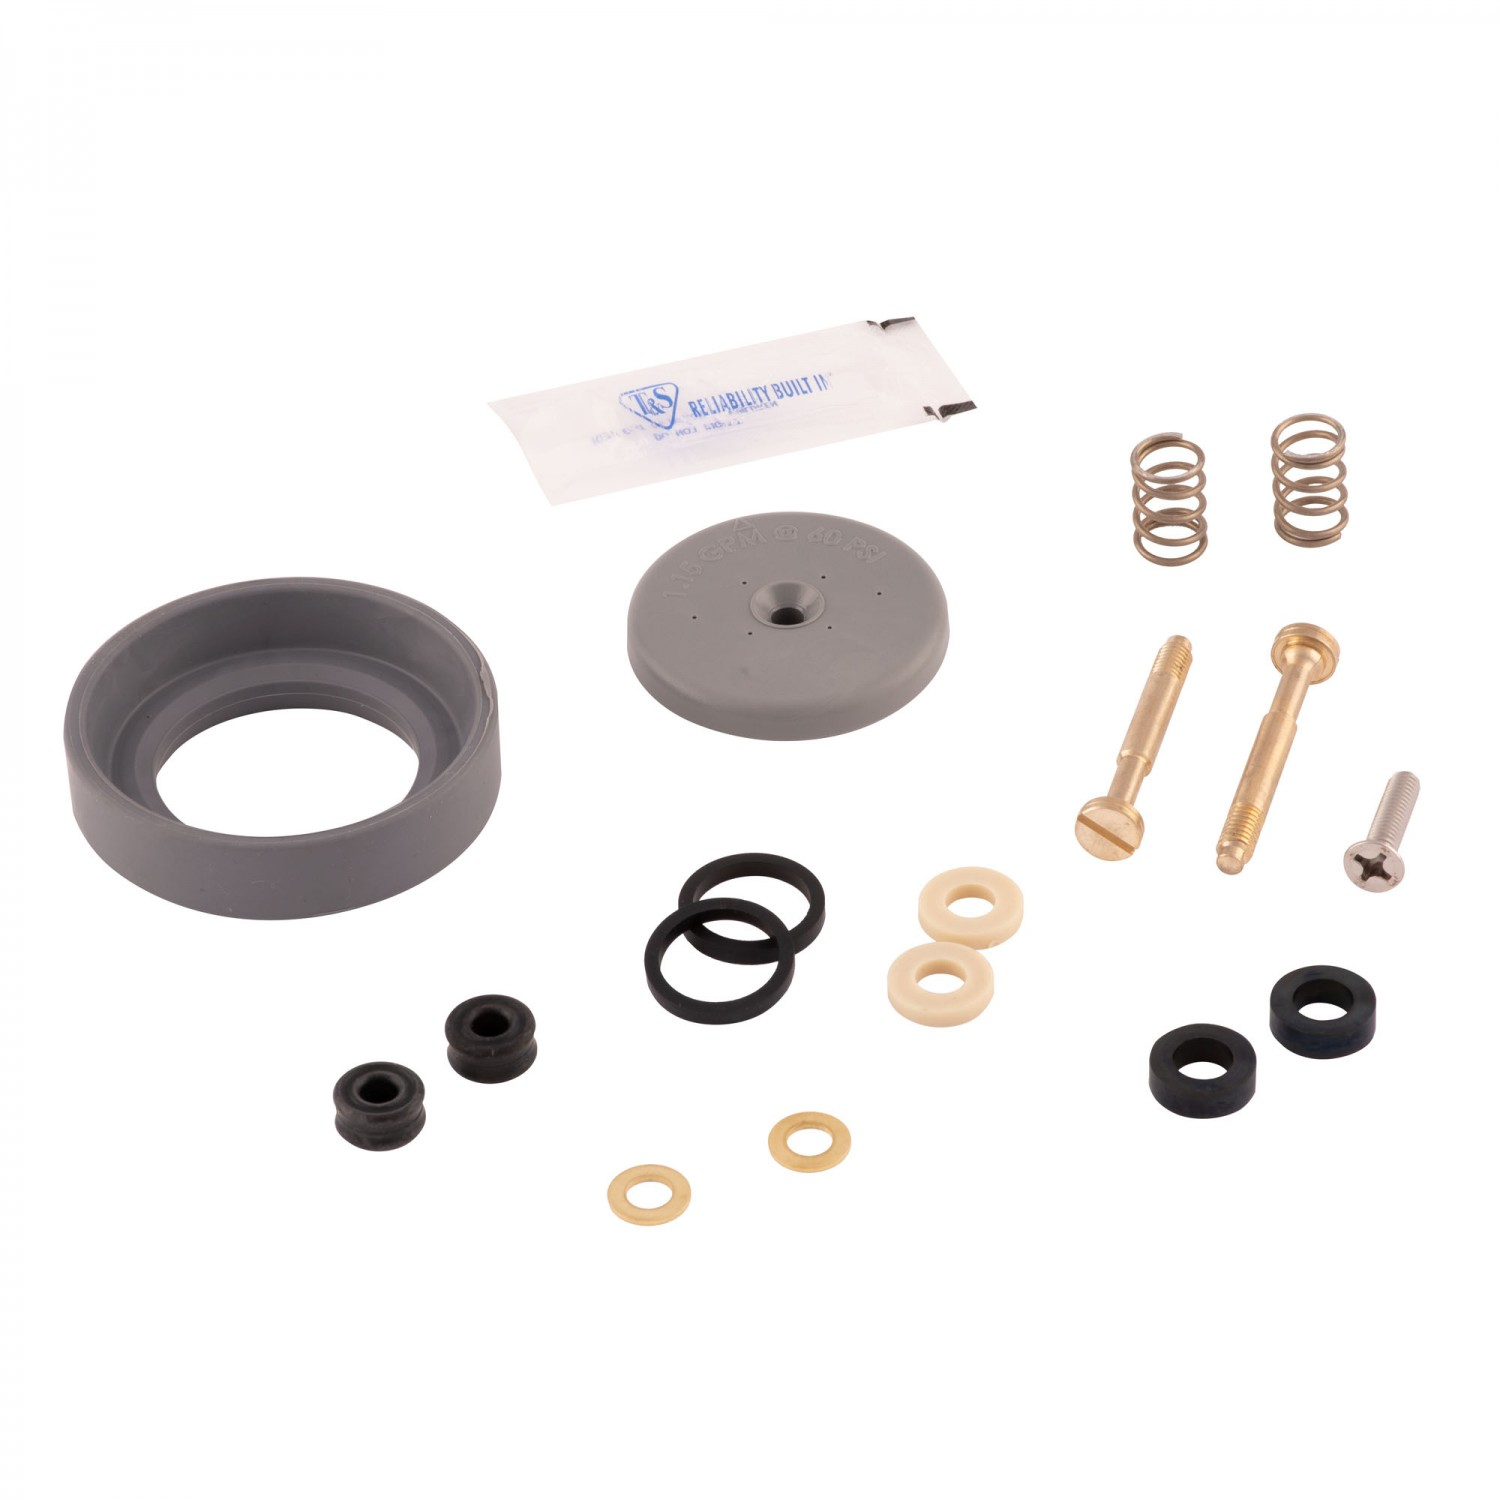 153-B10K - T&S Brass Parts Kit for B-0107 Spray Valves (Gray) B-10K